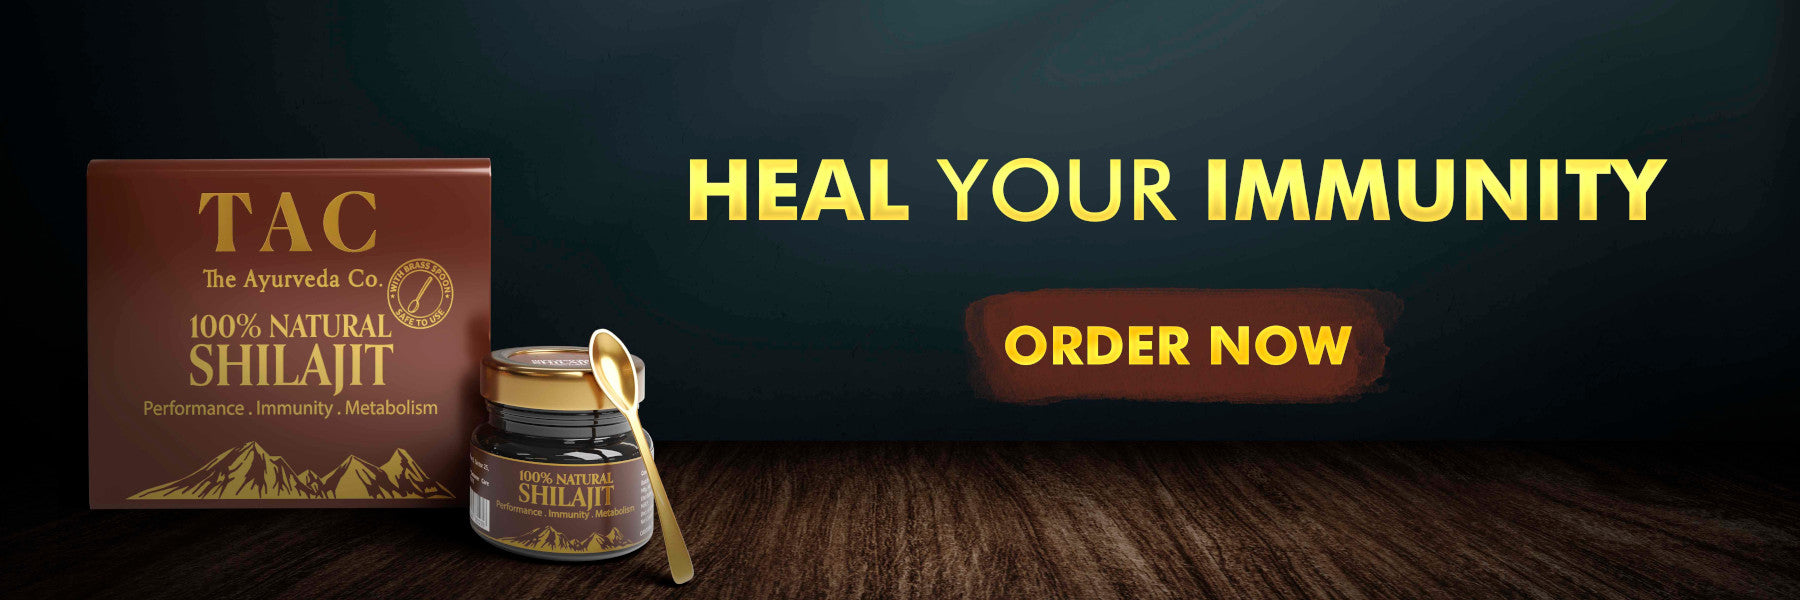 Heal your immunity - TAC for well-being